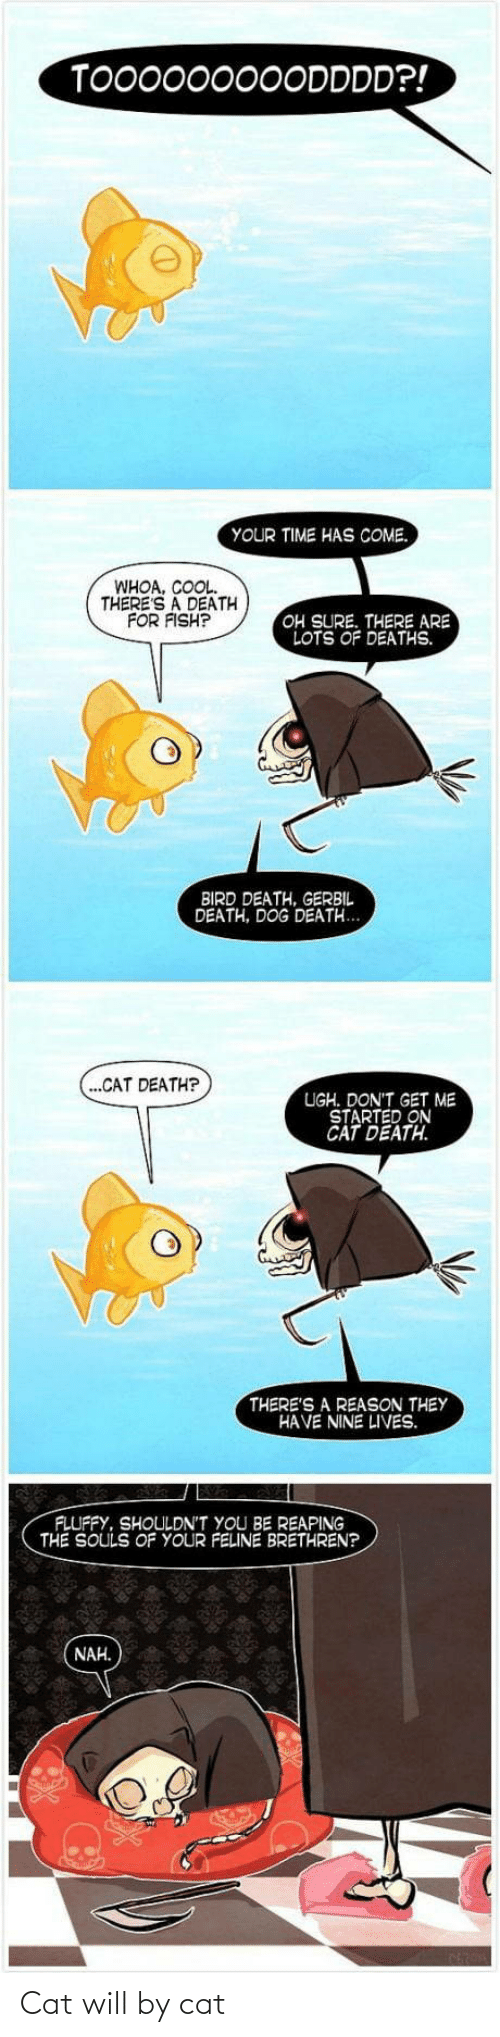 Fish: TO00000000DDDD?!  YOUR TIME HAS COME.  WHOA, COOL.  THERE'S A DEATH  FOR FISH?  OH SURE. THERE ARE  LOTS OF DEATHS.  BIRD DEATH, GERBIL  DEATH, DOG DEATH...  (...CAT DEATH?  UGH. DON'T GET ME  STARTED ON  CAT DEATH.  THERE'S A REASON THEY  HAVE NINE LIVES.  FLUFFY, SHOULDN'T YOU BE REAPING  THE SOULS OF YOUR FELINE BRETHREN?  NAH. Cat will by cat